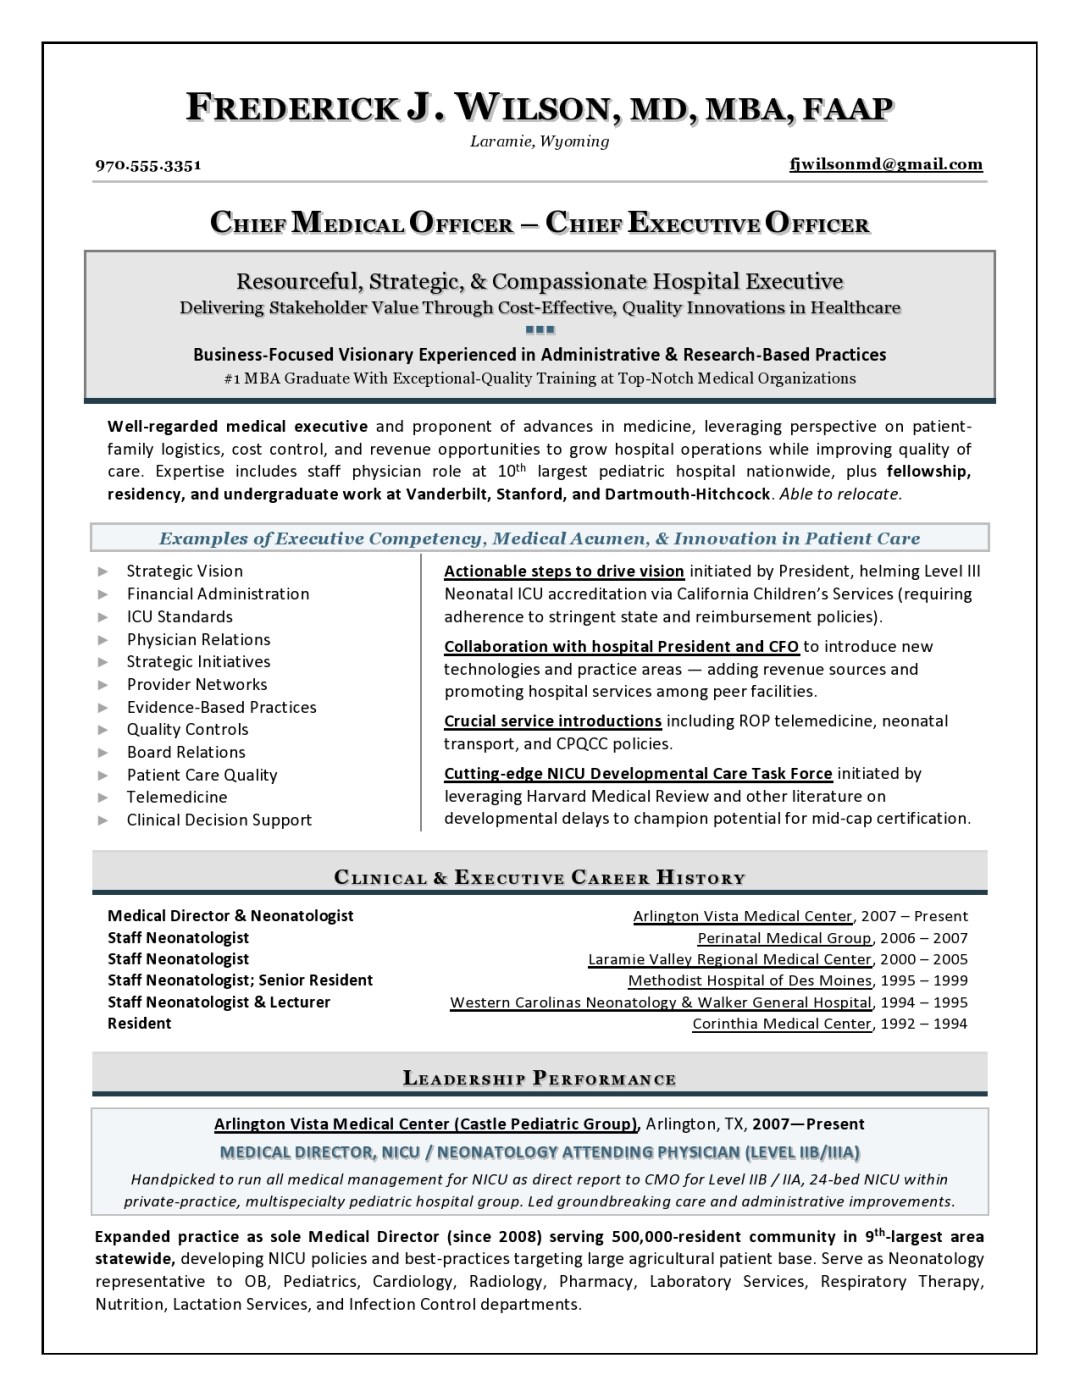 Chief Medical Officer Resume Sample Page 1